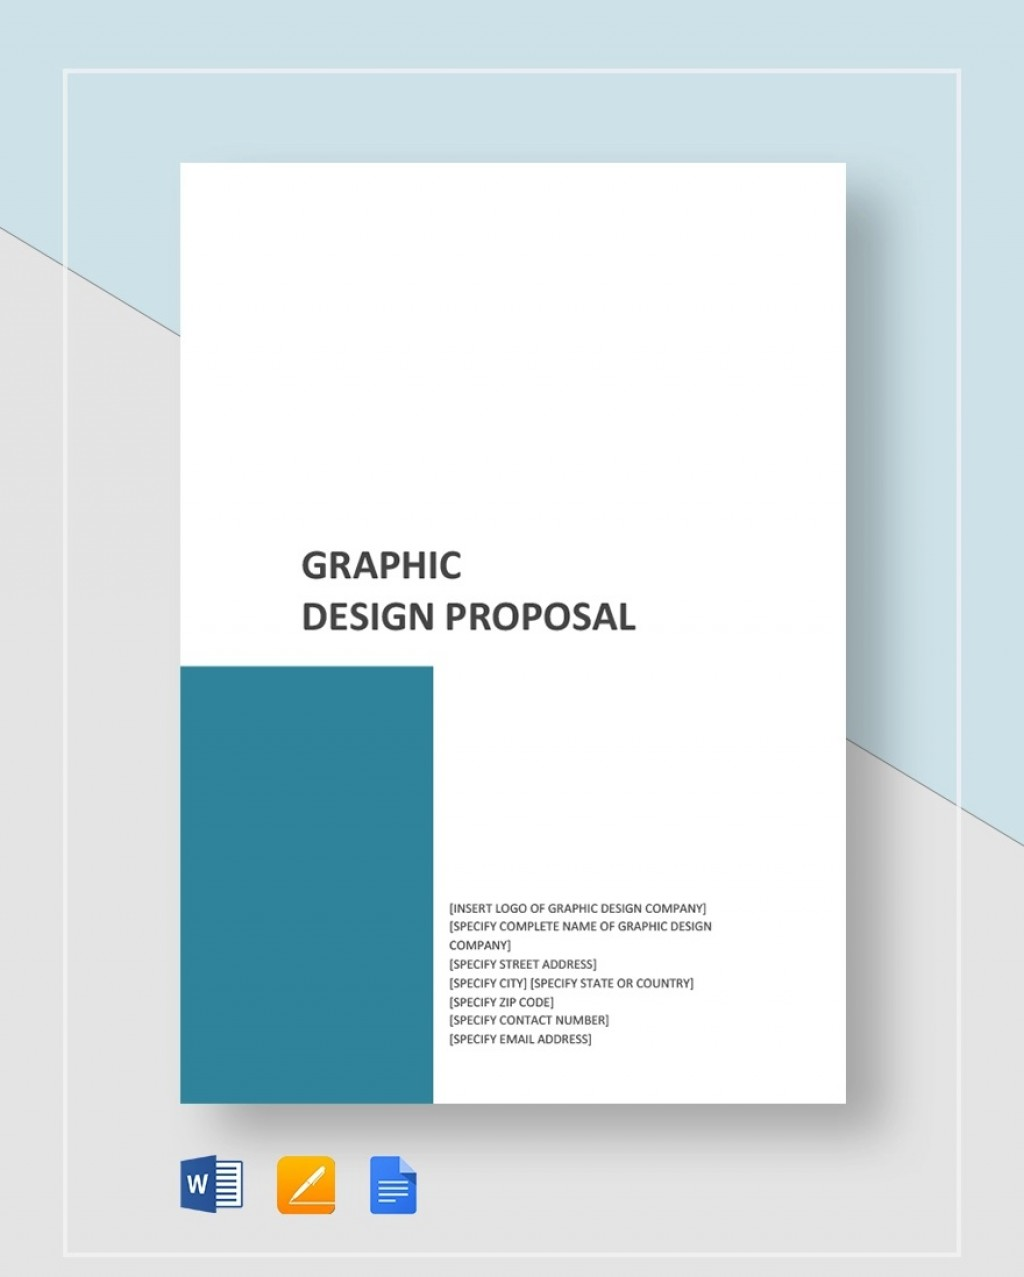 Template Graphic Design Proposal Idea  Free Download IndesignLarge